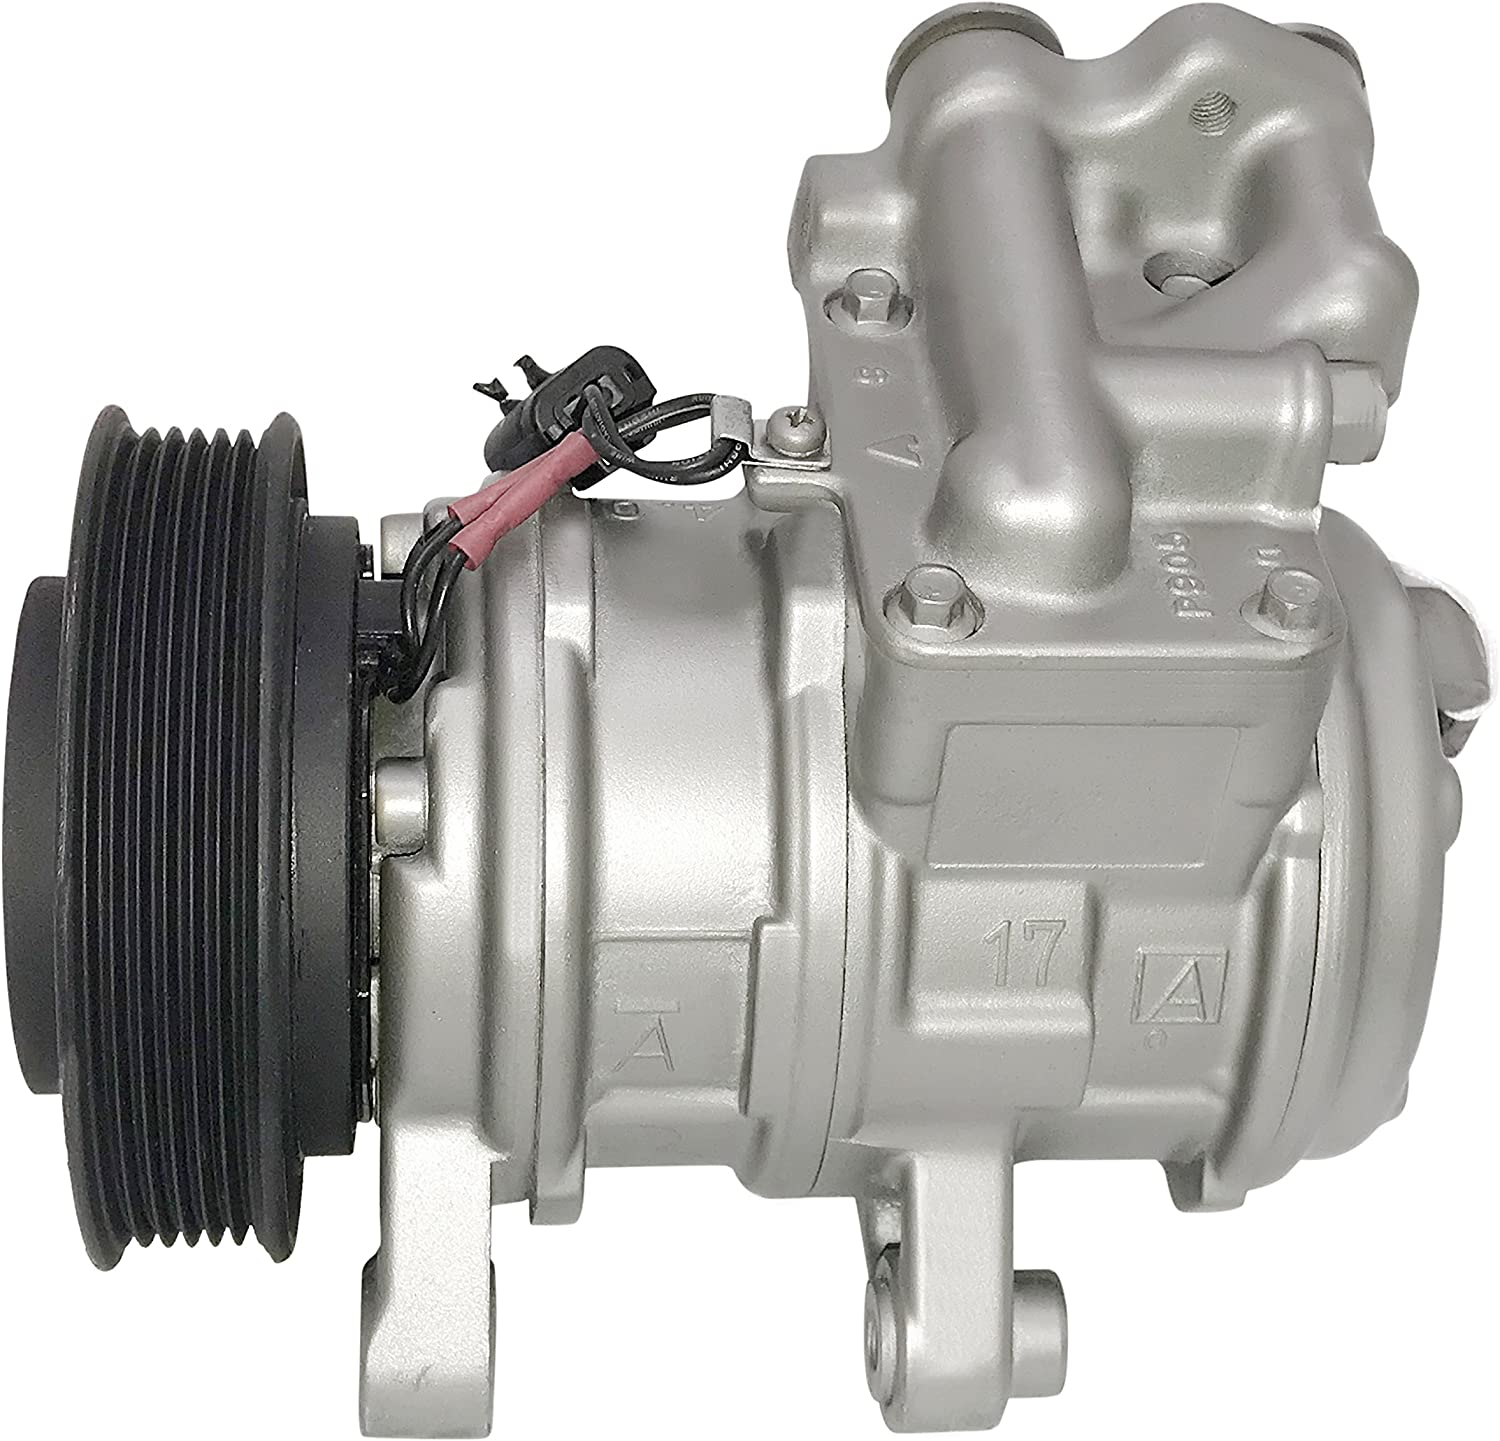 RYC Remanufactured AC Compressor and Clutch 豪華な 全国どこでも送料無料 C A GG379